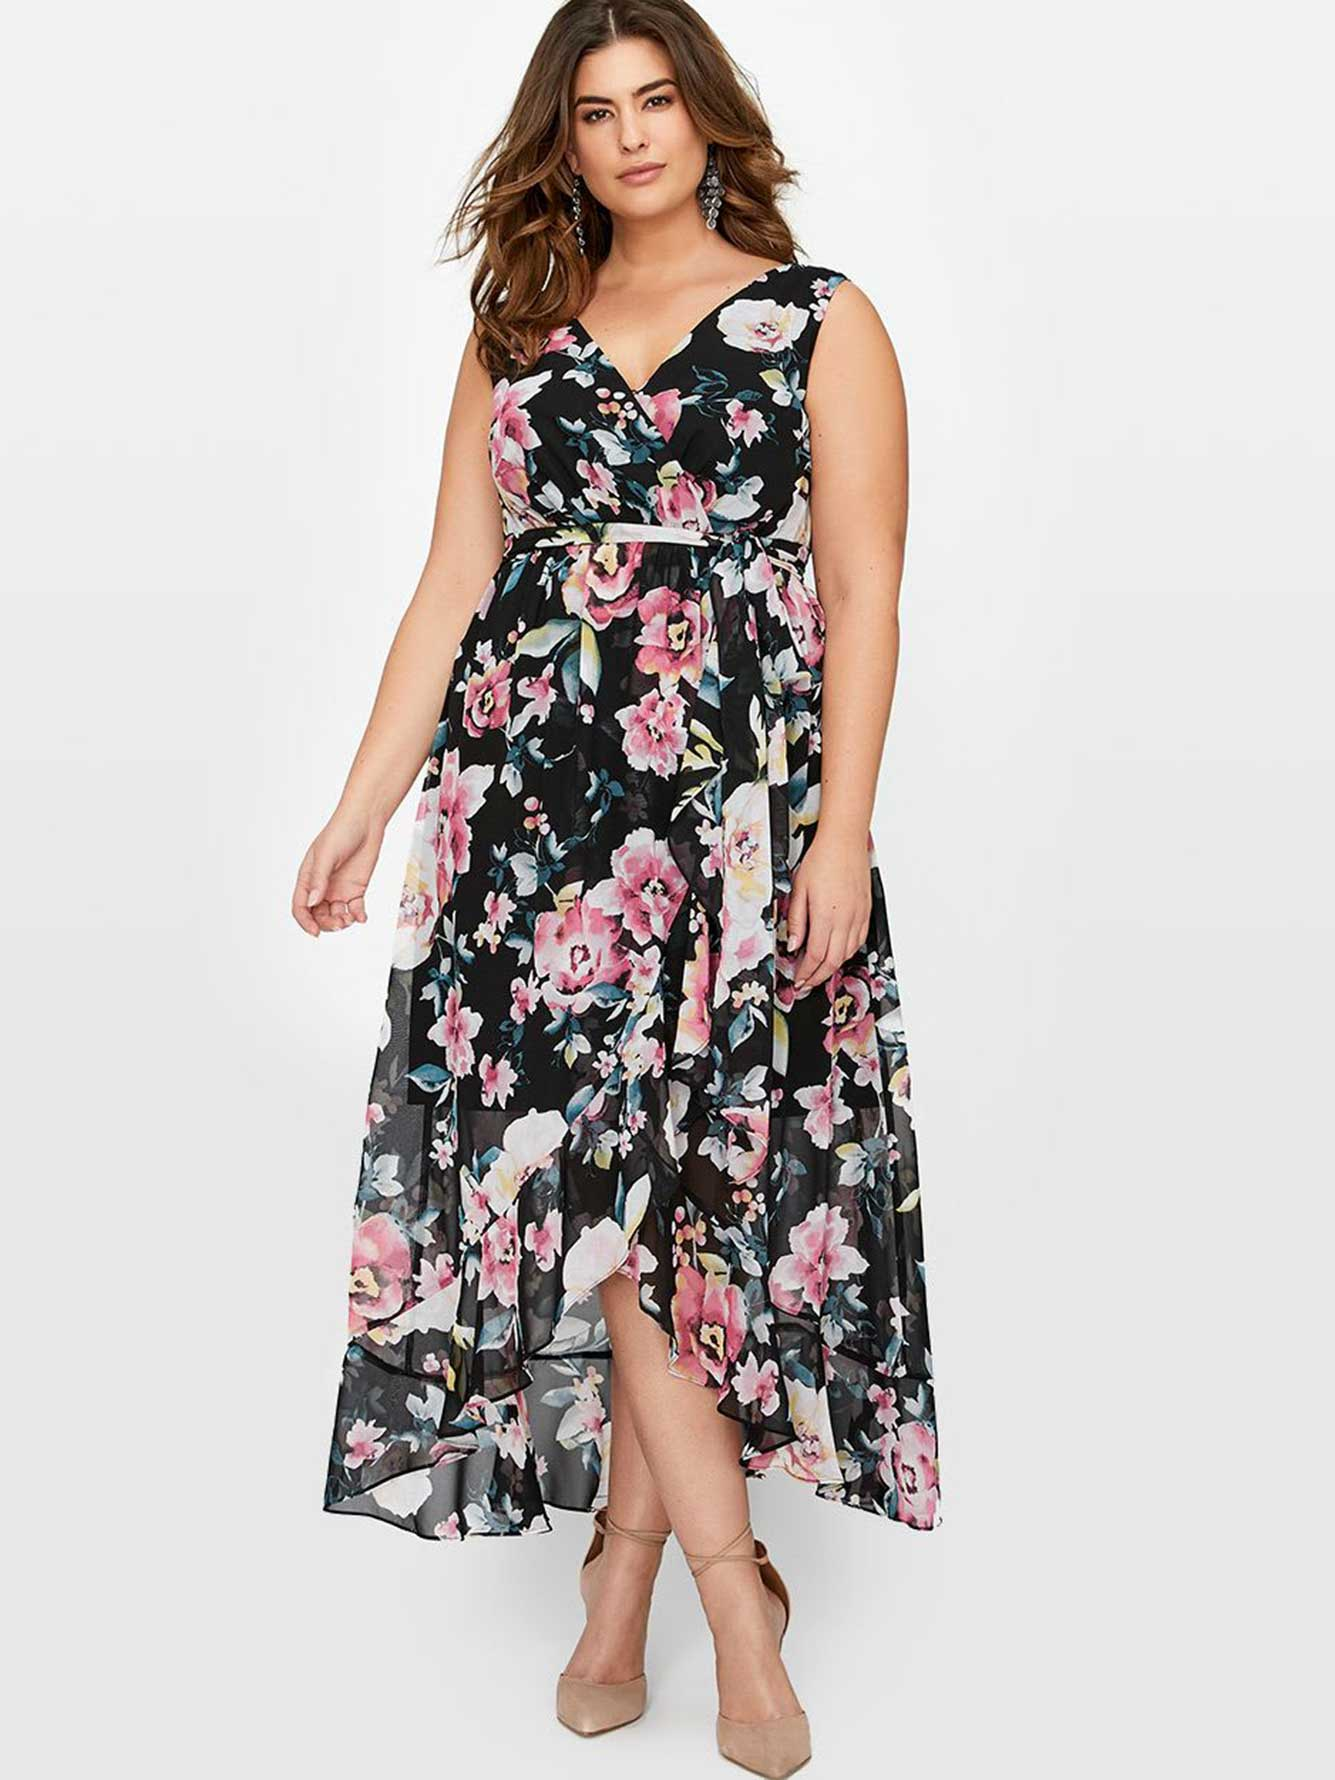 Find great deals on eBay for maxi sleeveless dress. Shop with confidence.